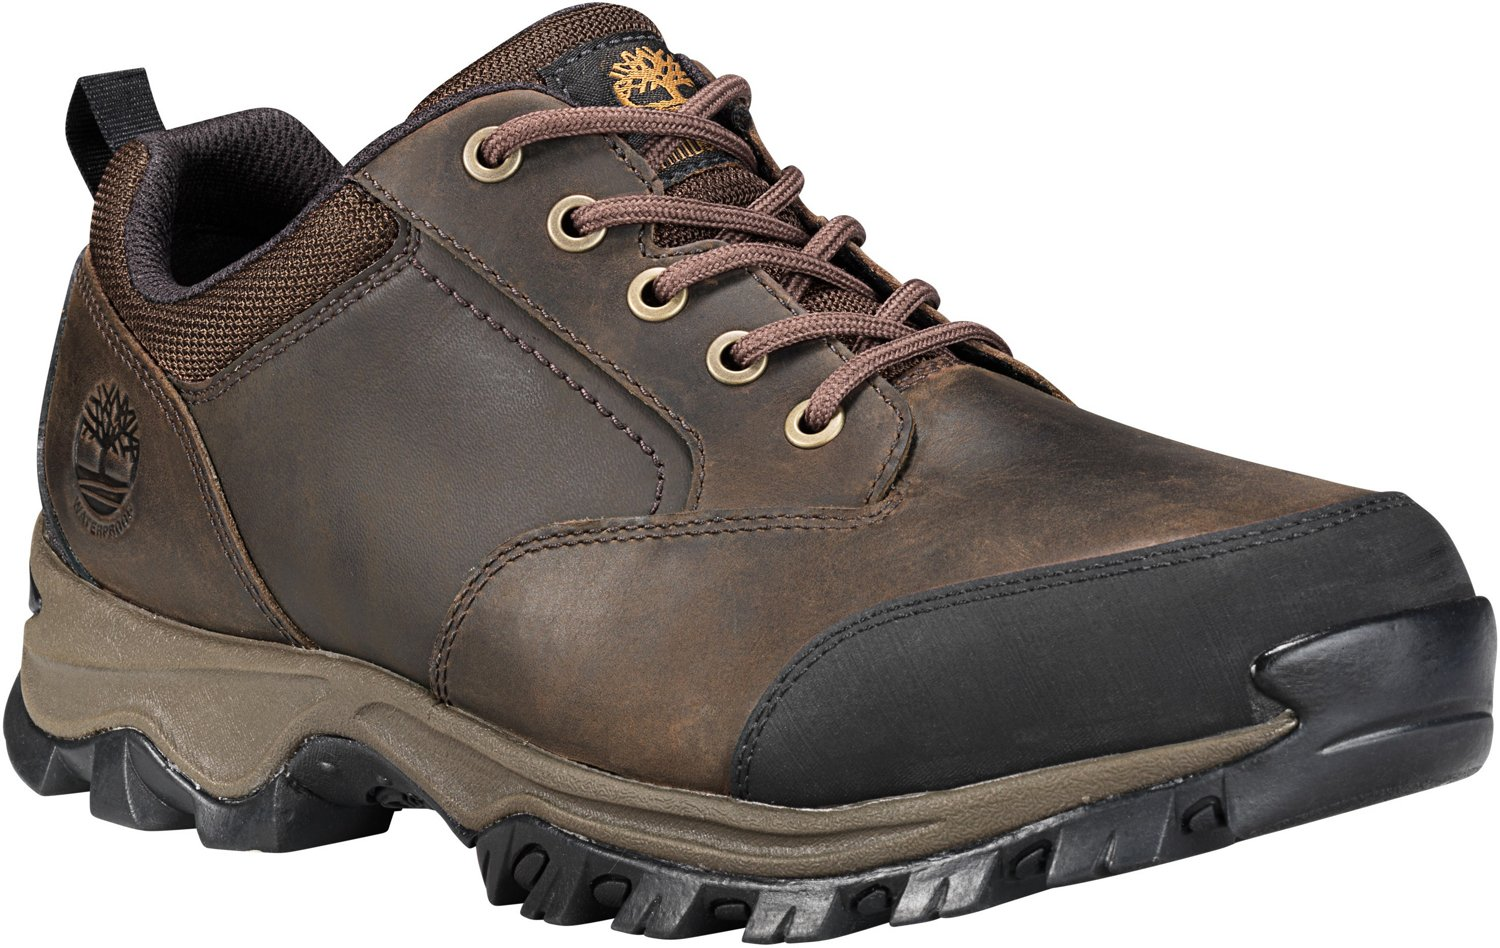 23656a609b Display product reviews for Timberland Men's Keele Ridge Low Hiking Shoes